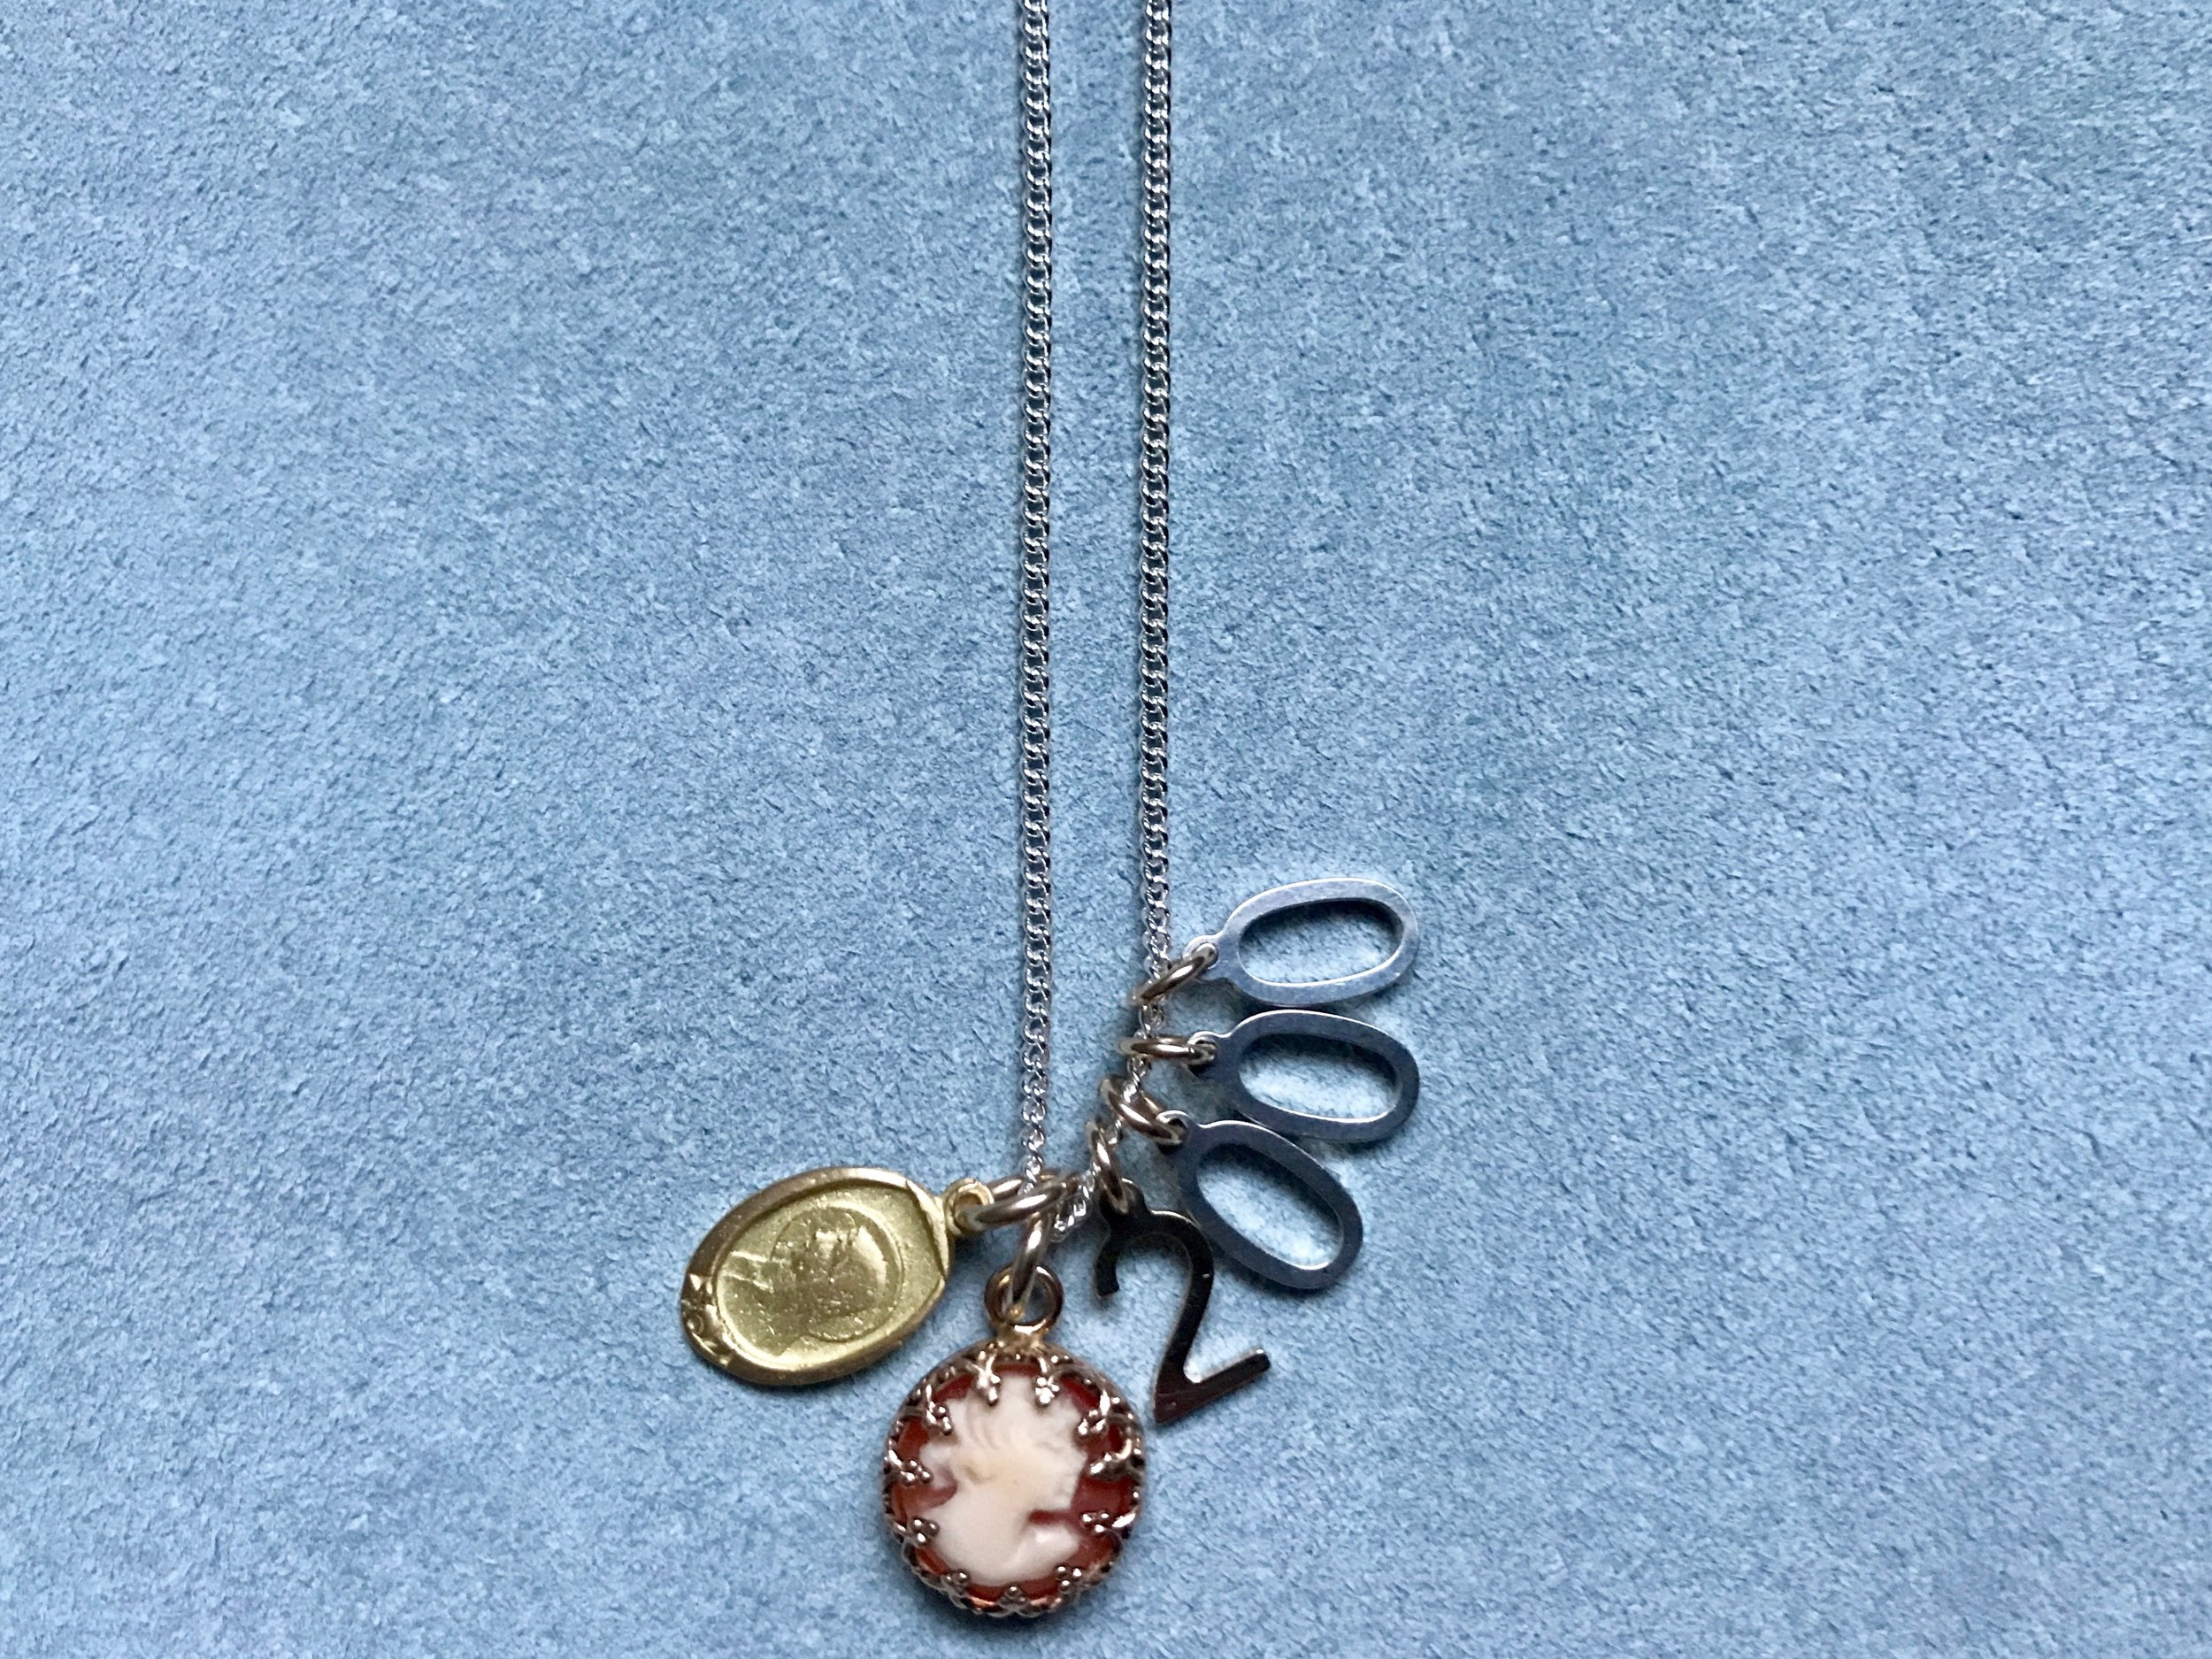 MADONNA PENDANT, CORAL CAMEO, NUMBER CHARM PENDANT NECKLACE